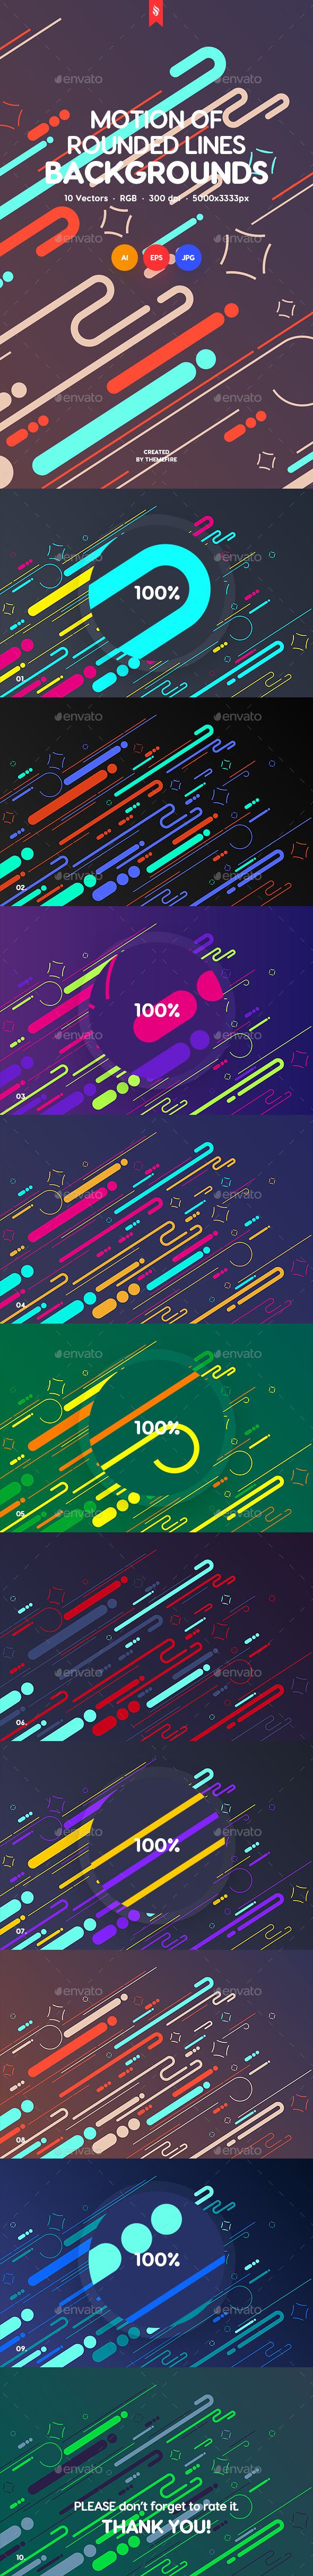 Motion of Rounded Lines Backgrounds - Abstract Backgrounds